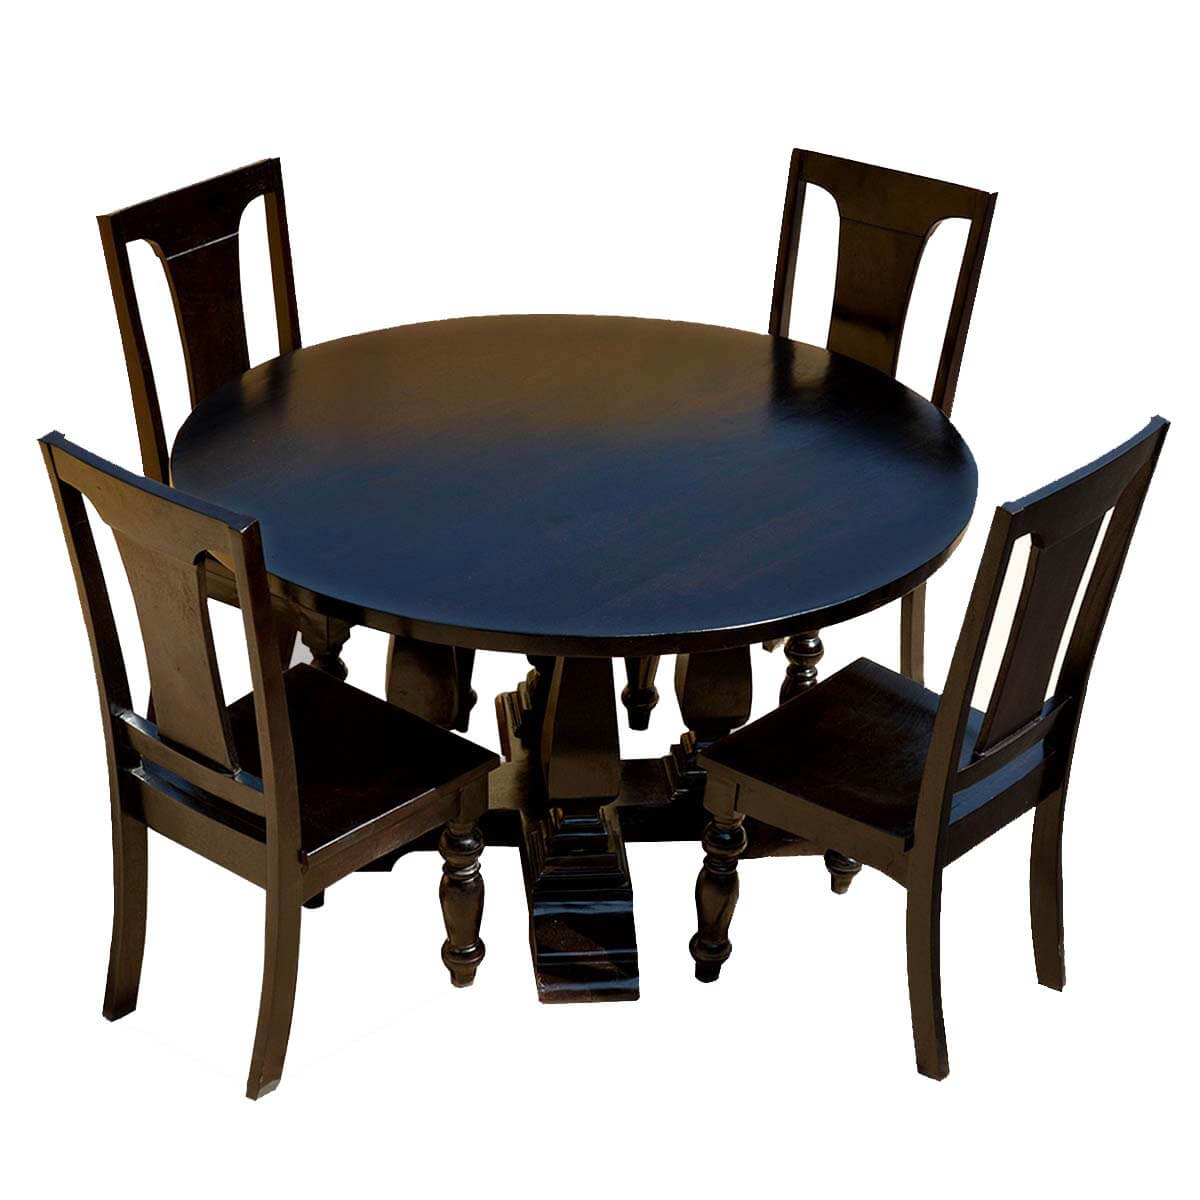 Mango Wood Lincoln Study Black Round Dining Table amp Chair Set : 4875 from sierralivingconcepts.com size 1200 x 1200 jpeg 106kB